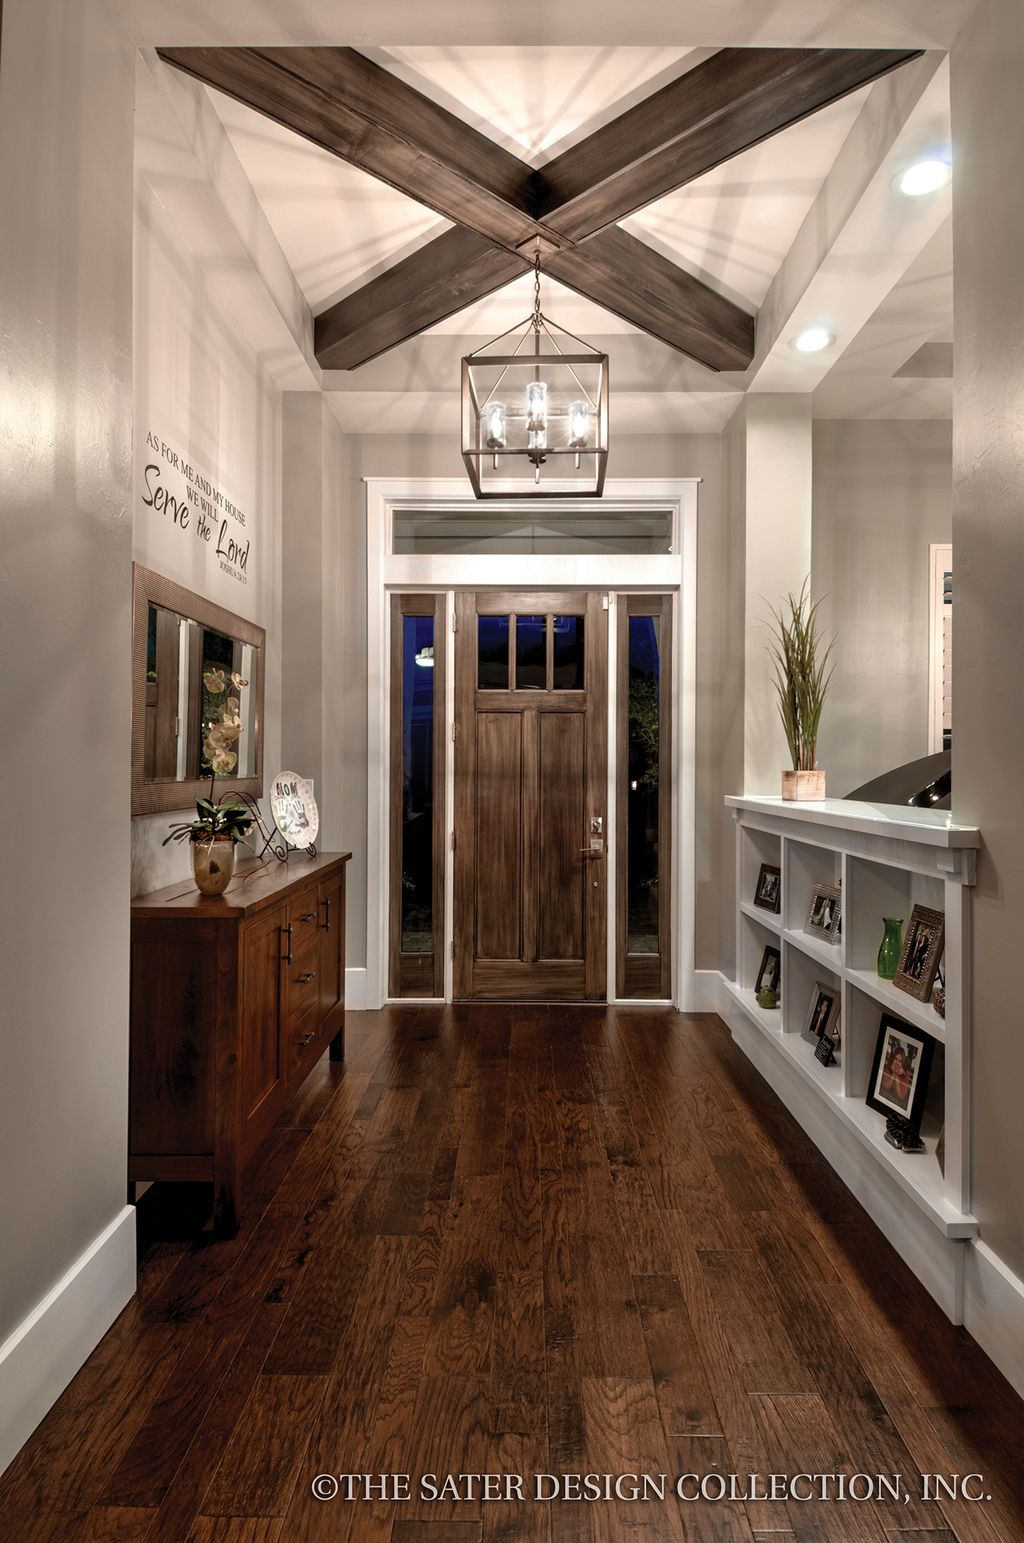 Https Homebnc Com Best Rustic Farmhouse Interior Design Ideas Farmhouseinterior: 27 Welcoming Rustic Entryway Decorating Ideas That Every Guest Will Love